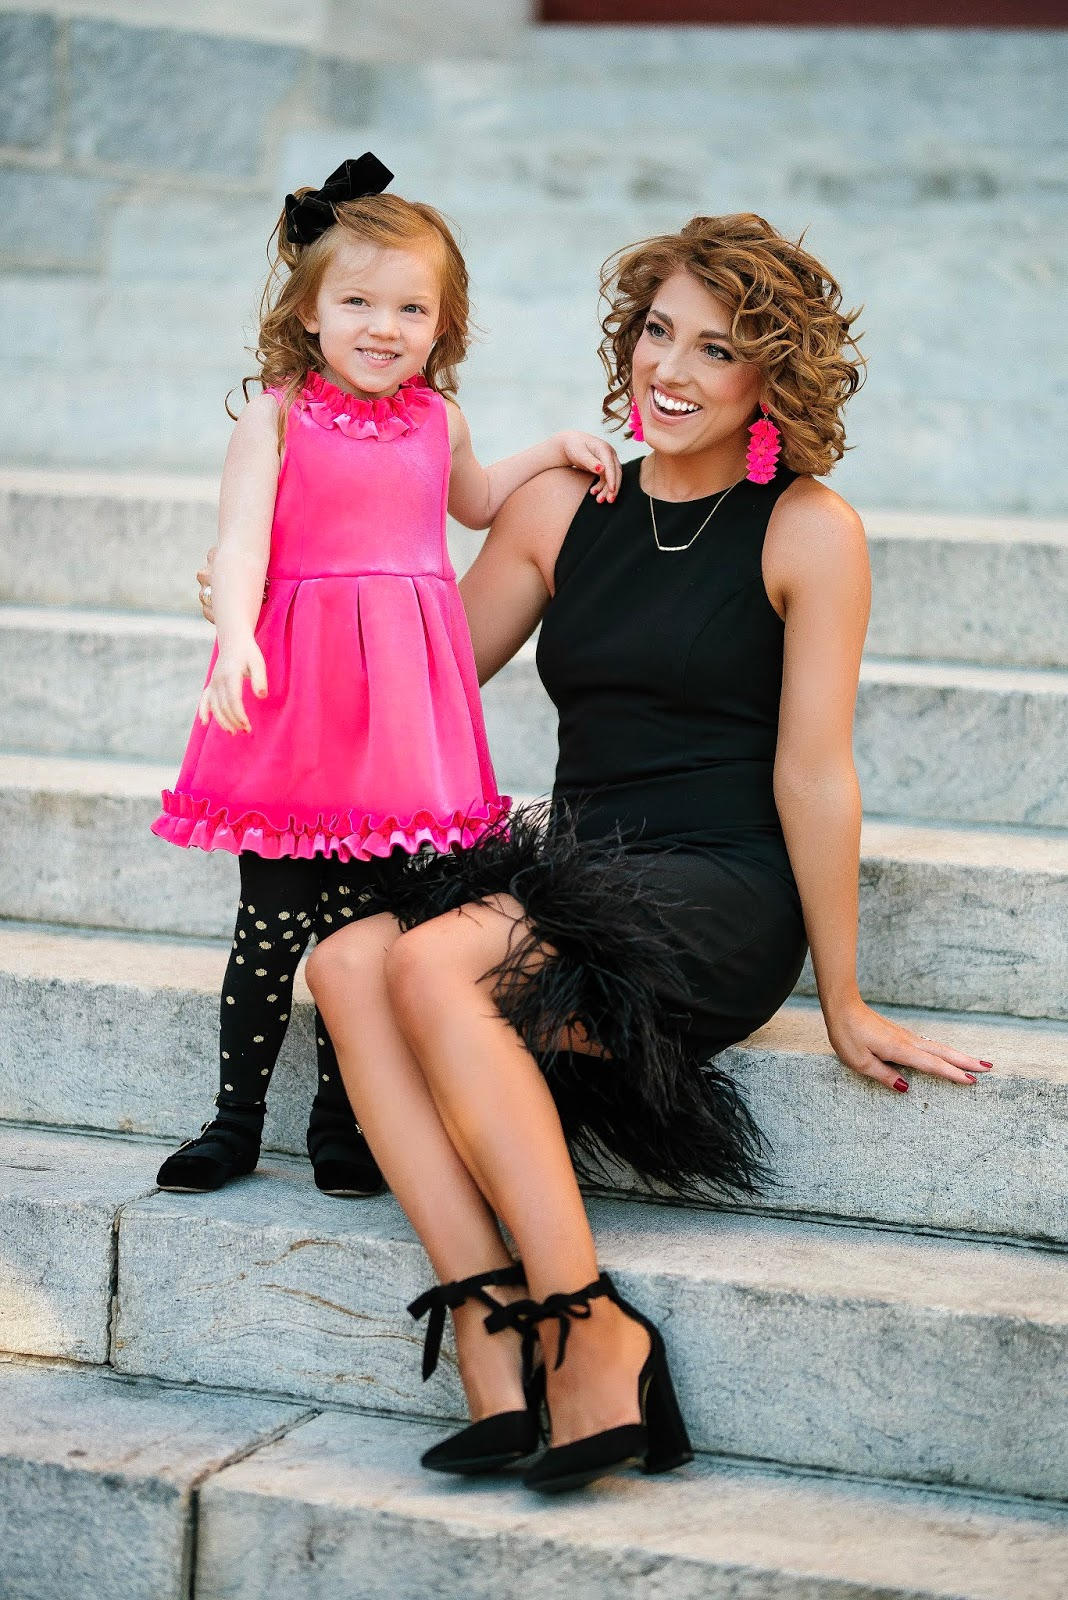 Mommy & Me Holiday Style: Pink & Black, Feather Hem Dress, Ruffle Hem Dress - Something Delightful Blog